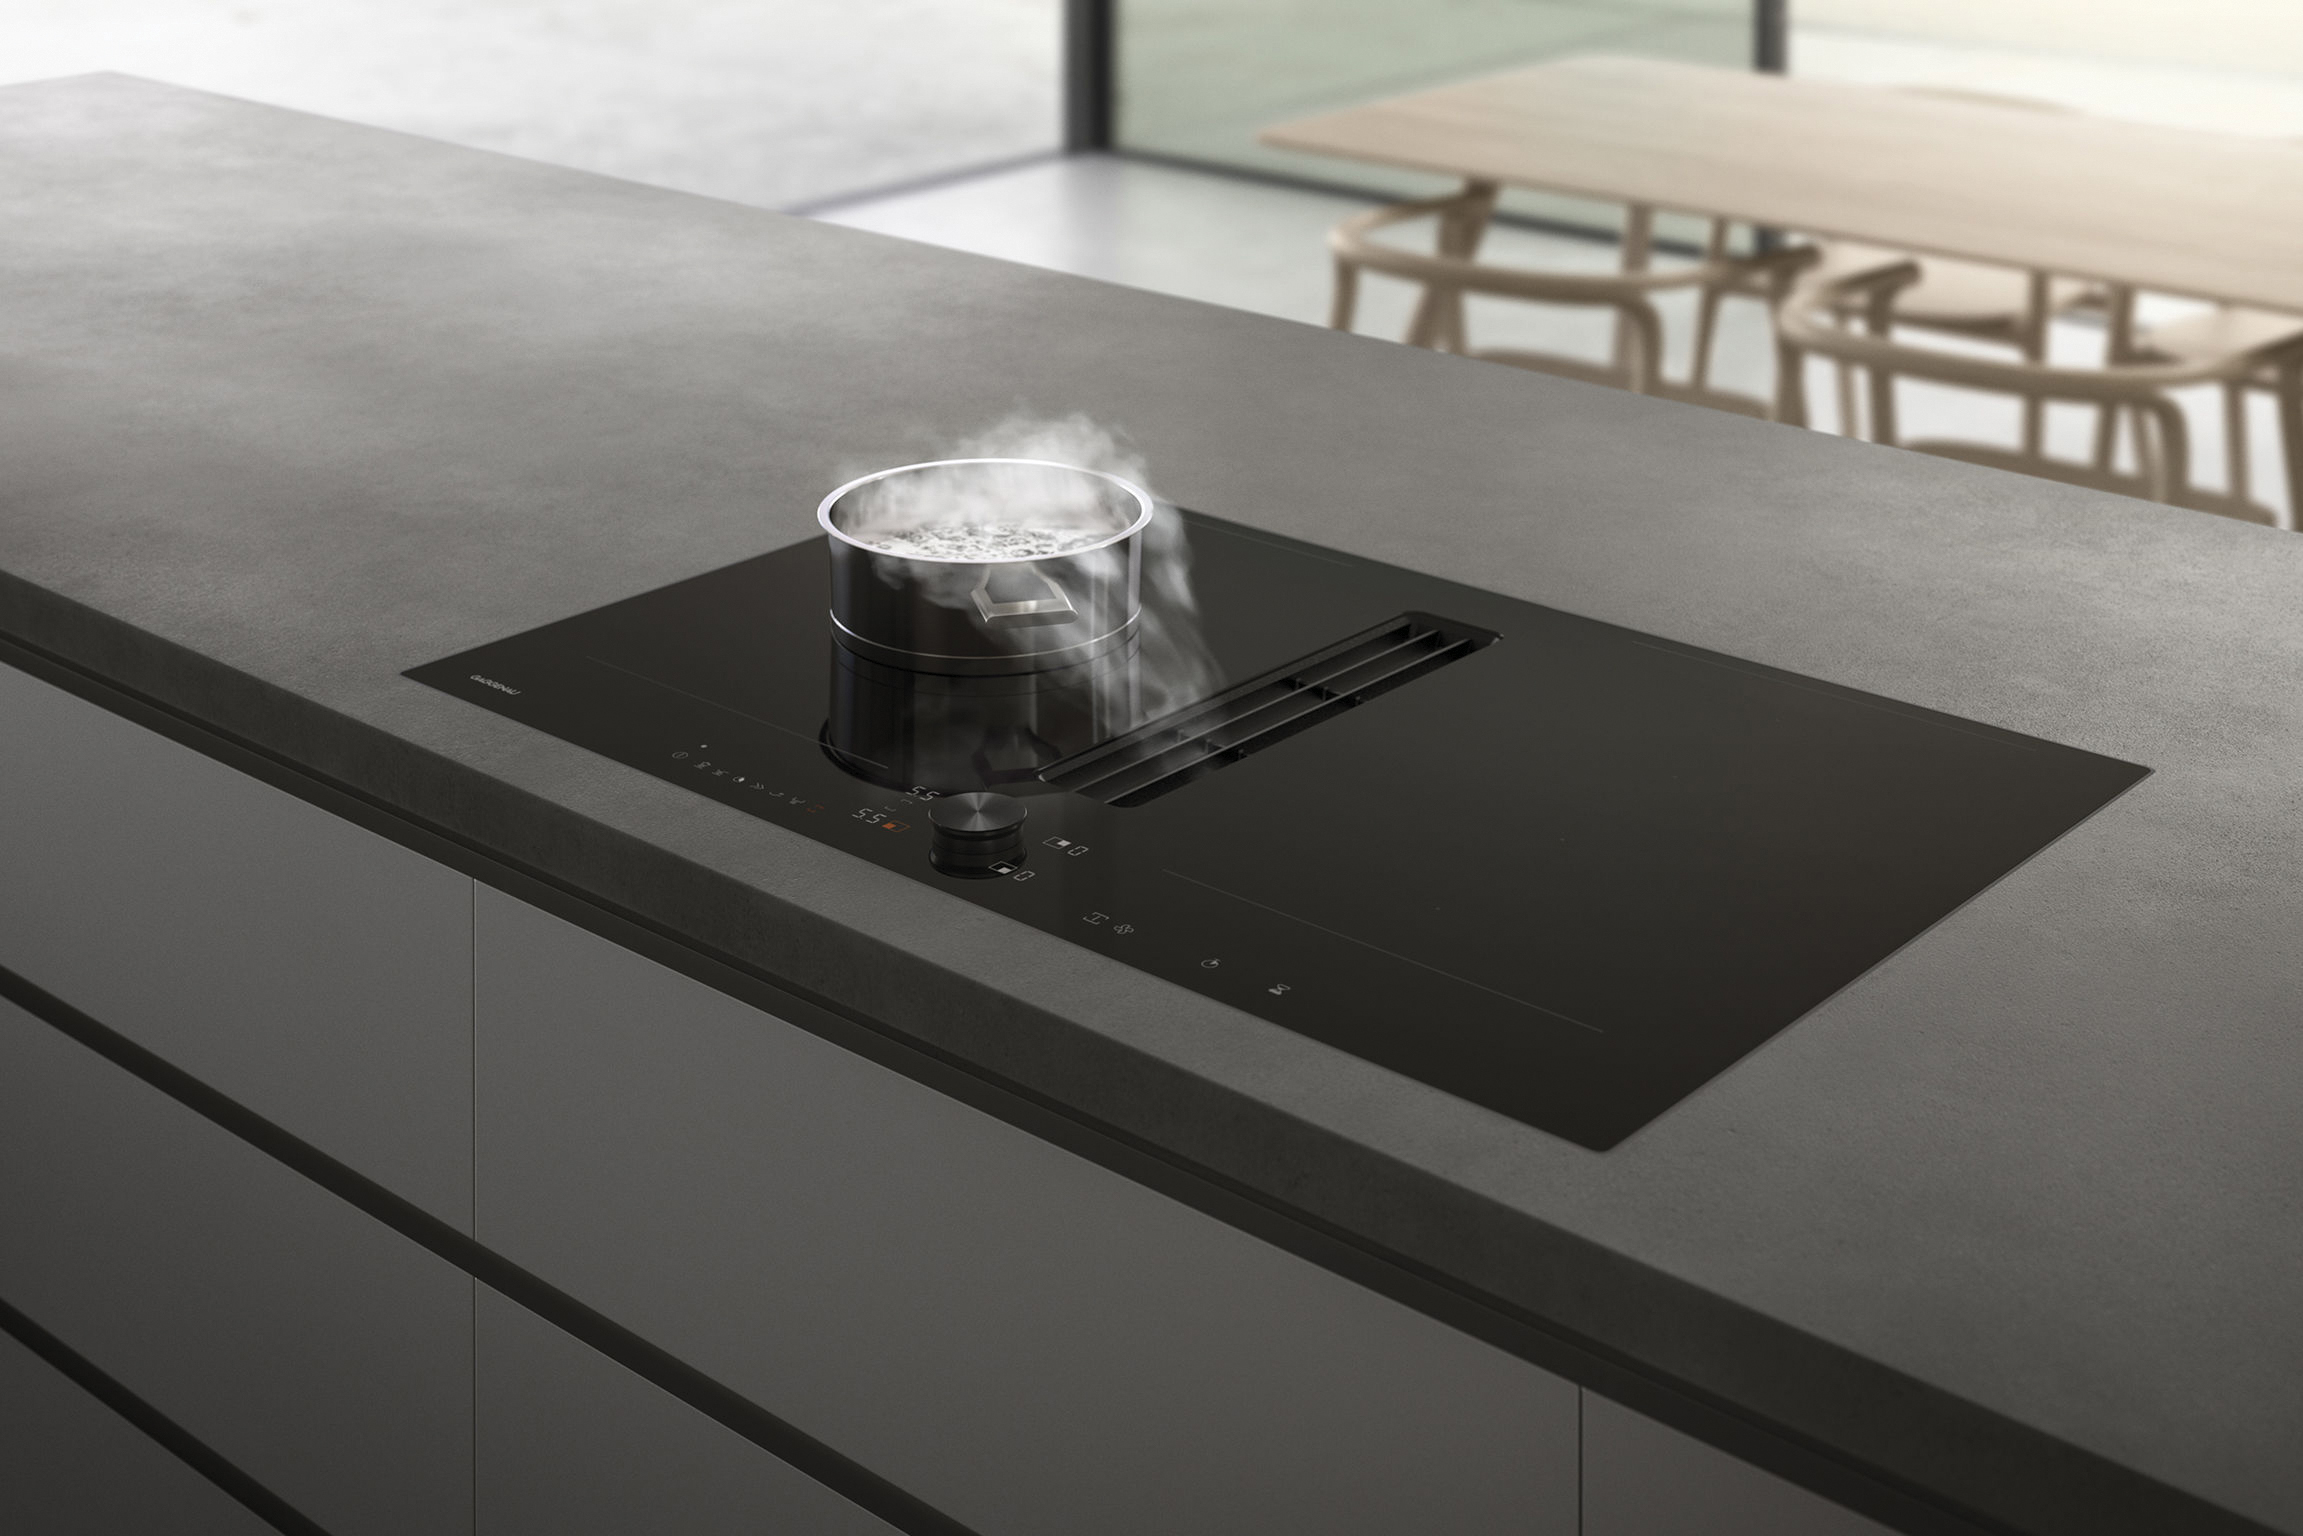 2 - Series 200 - Flex Induction with Integrated Ventilation System